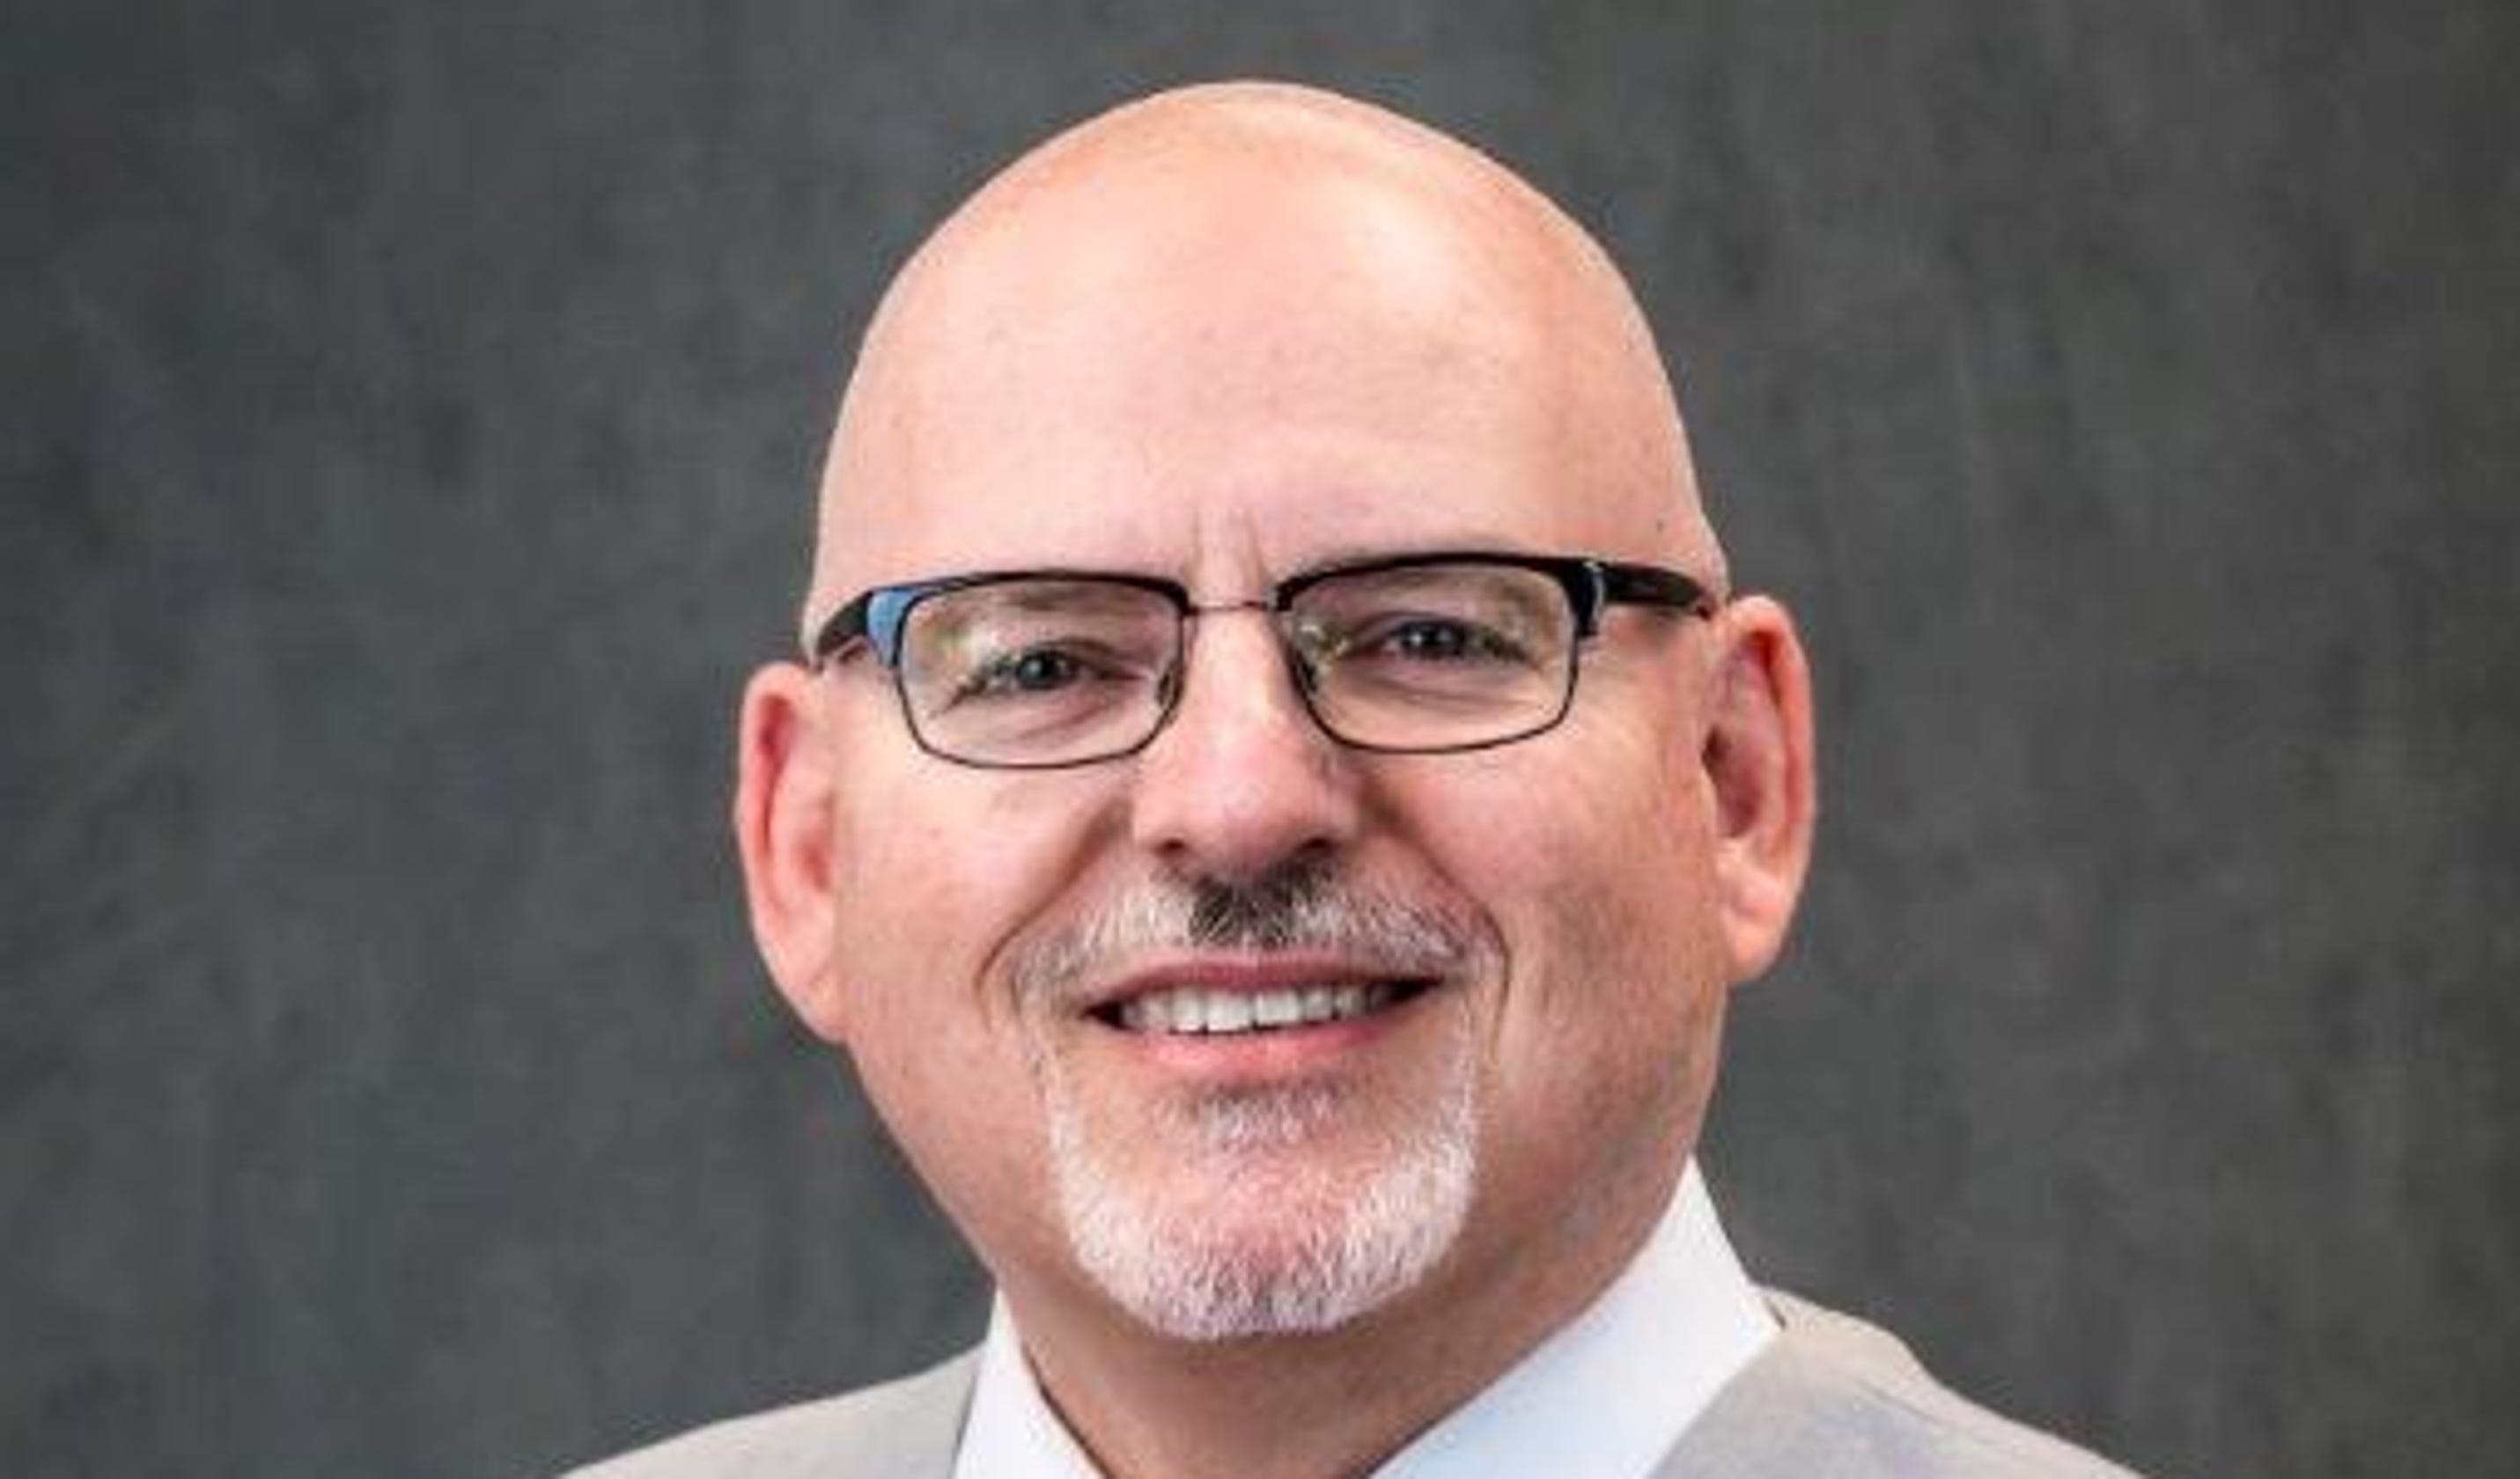 Knoxville area pastor Richie Beeler named Knox County Commissioner